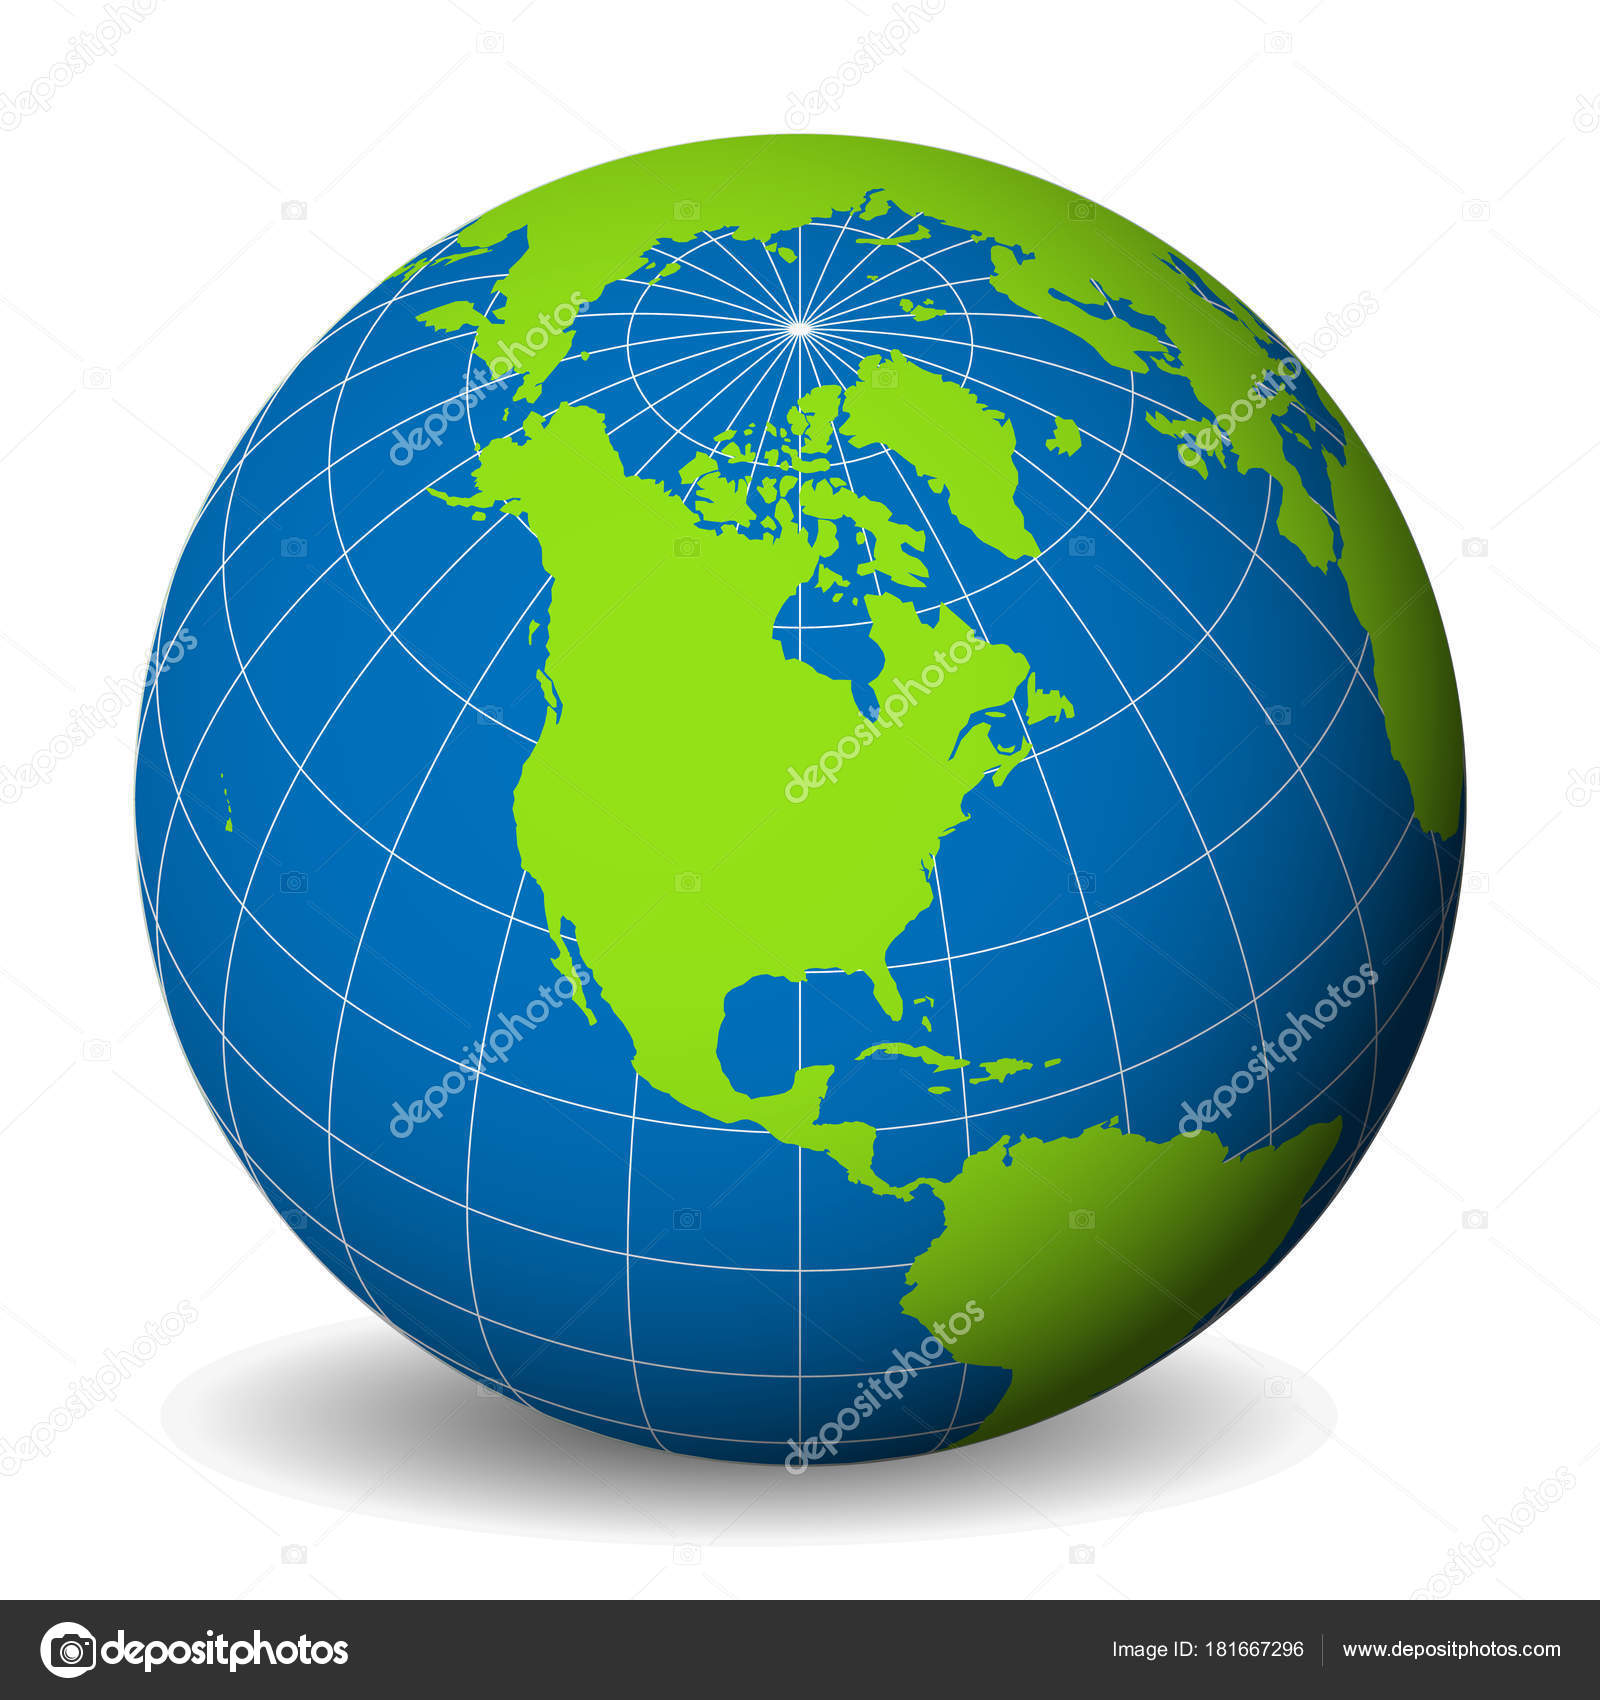 Earth globe with green world map and blue seas and oceans focused on earth globe with green world map and blue seas and oceans focused on north america with thin white meridians and parallels 3d vector illustration gumiabroncs Gallery